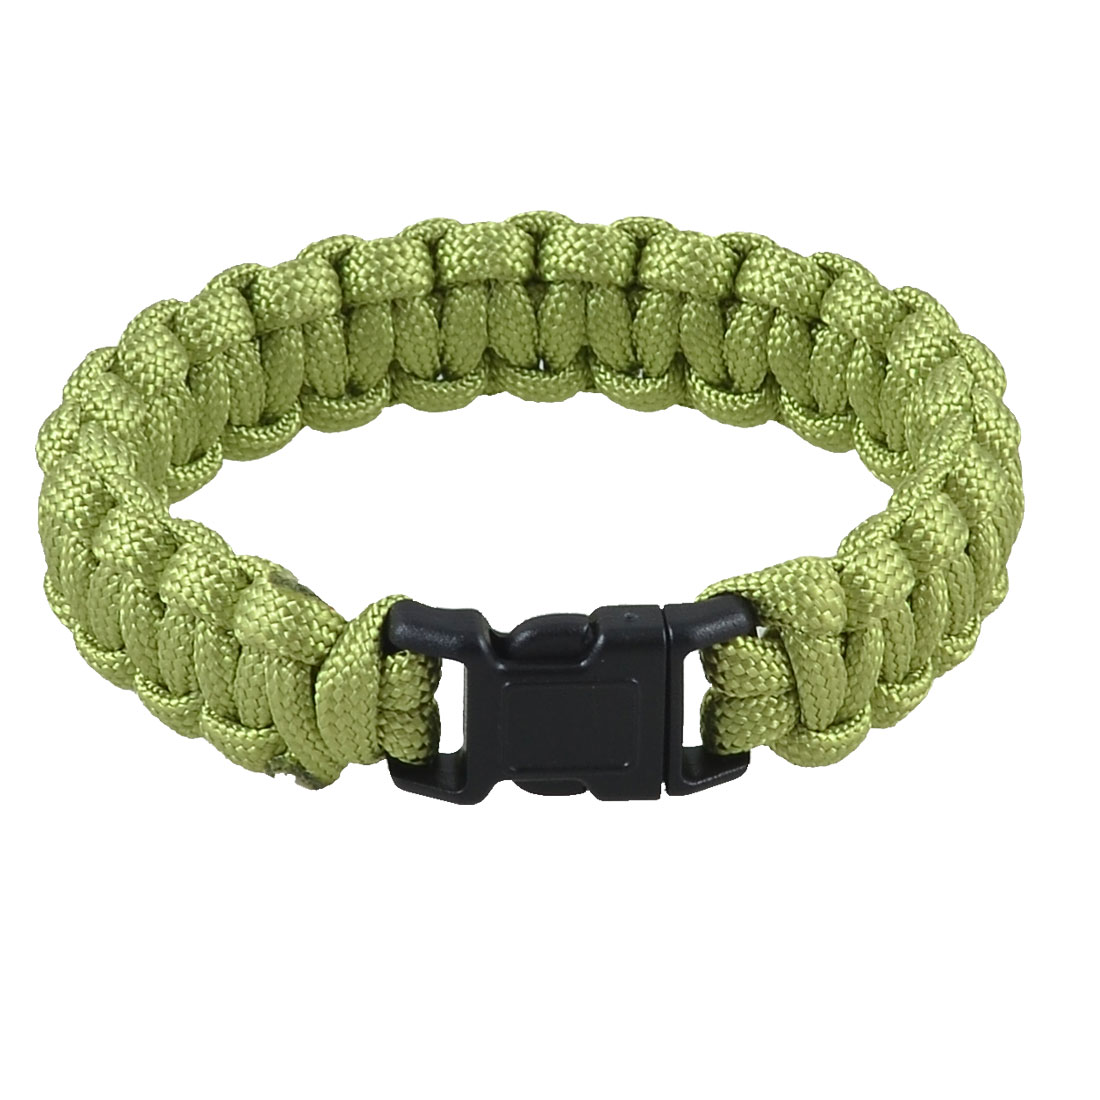 Plastic Quick Release Buckle Light Green Survival Bracelet 220Lbs